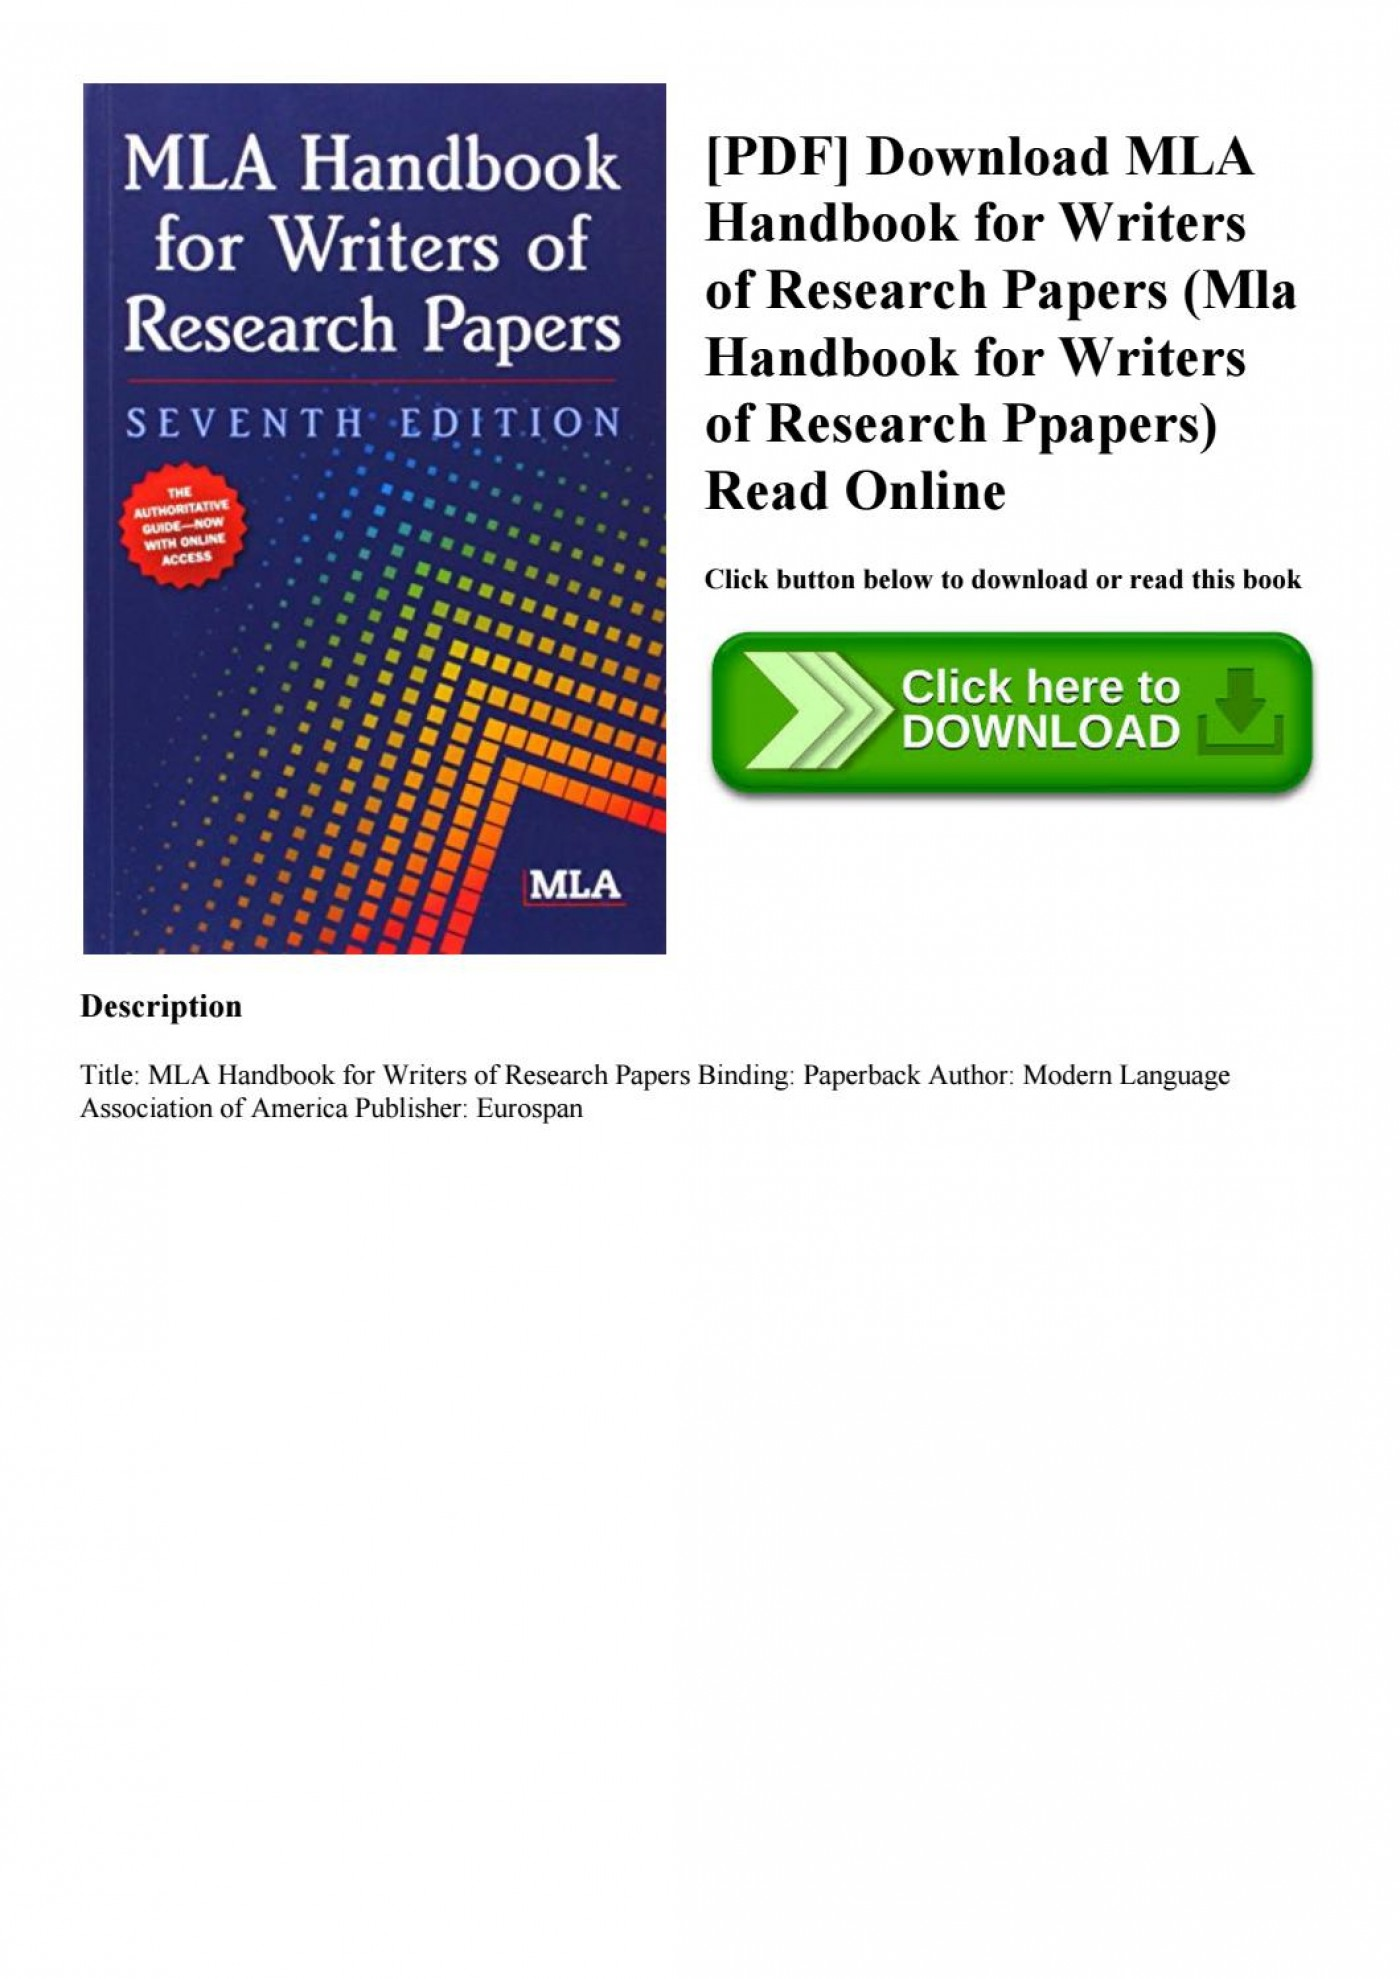 001 Mla Handbook For Writing Research Papers Pdf Paper Page 1 Beautiful Writers Of 5th Edition 7th Free Download 1400